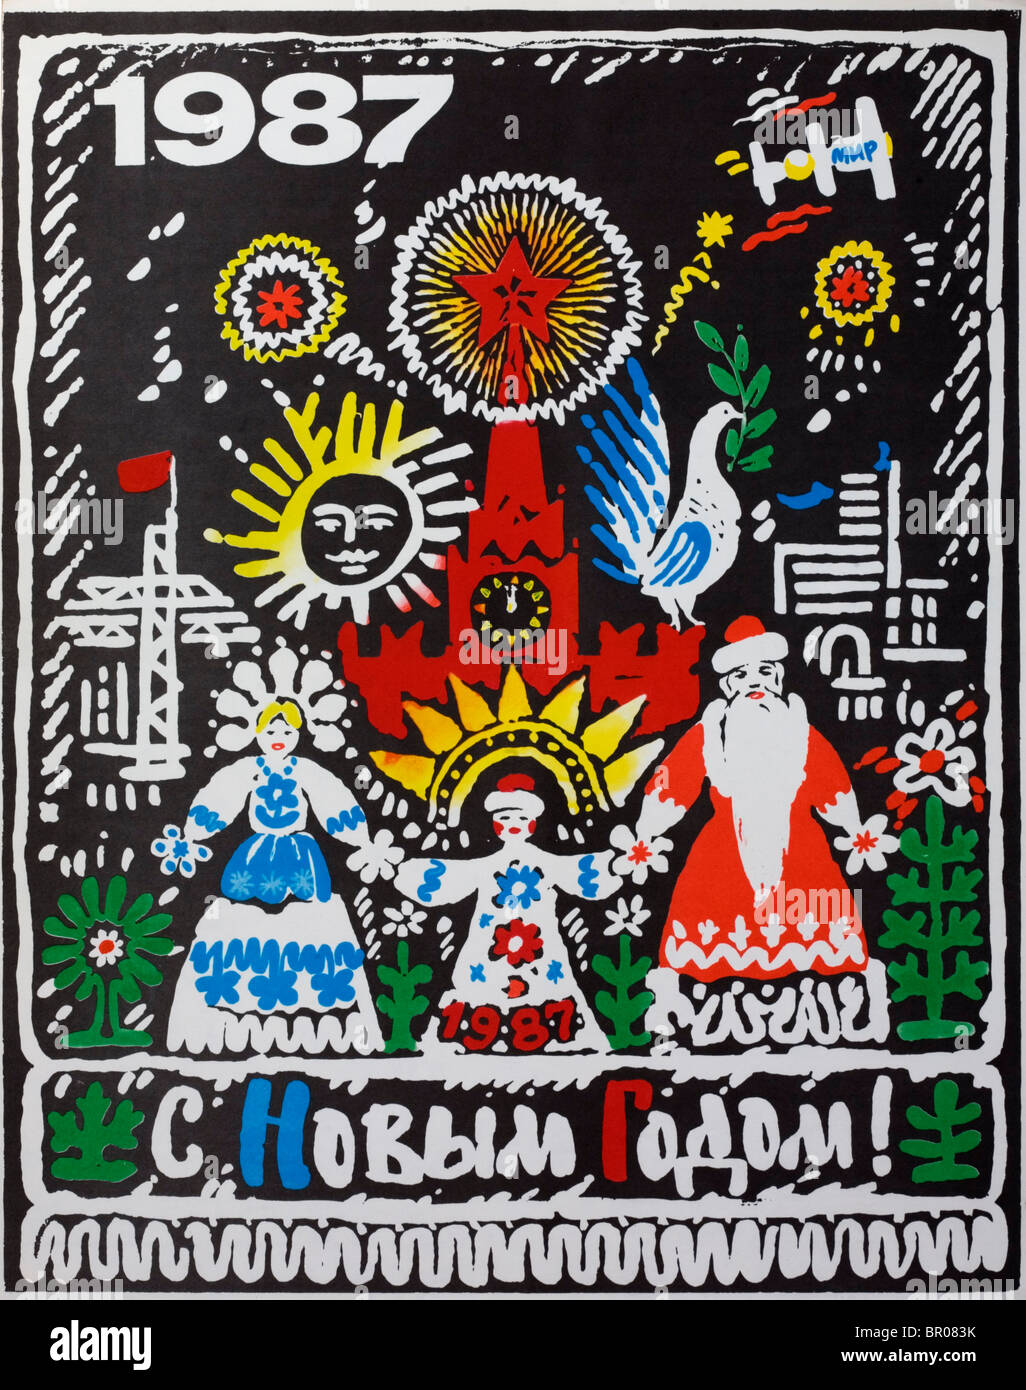 Russian christmas poster from 1987 showing pre christian symbols russian christmas poster from 1987 showing pre christian symbols buycottarizona Image collections